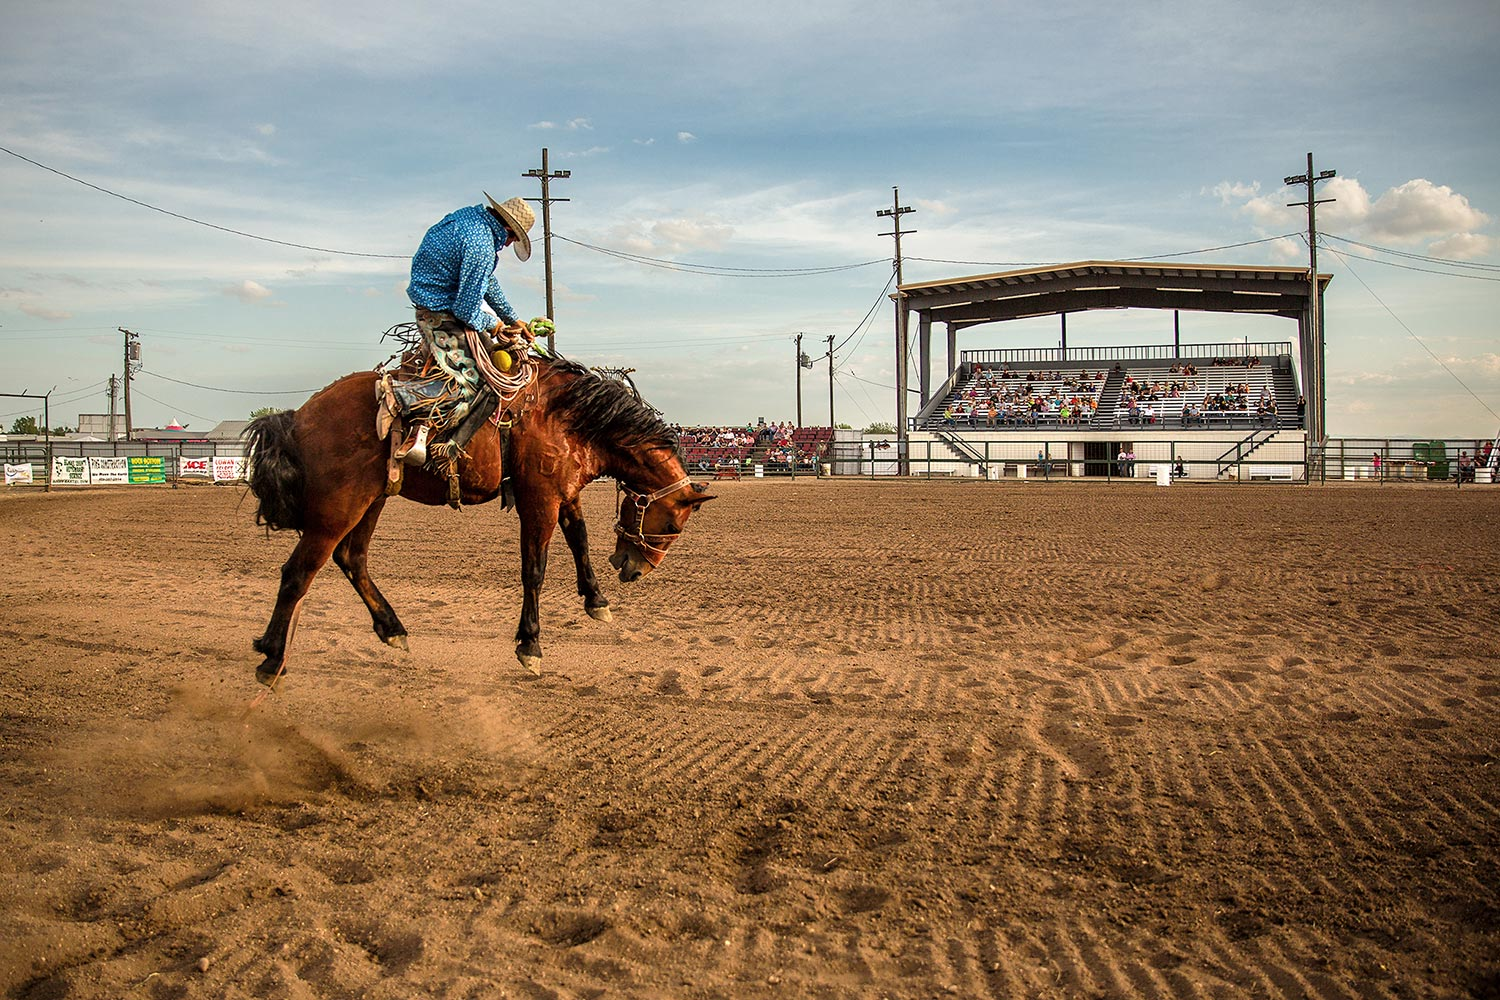 A horse tries bucking off its rider in a rodeo at the Blaine County Fair in Chinook, Montana .      → Buy a Print